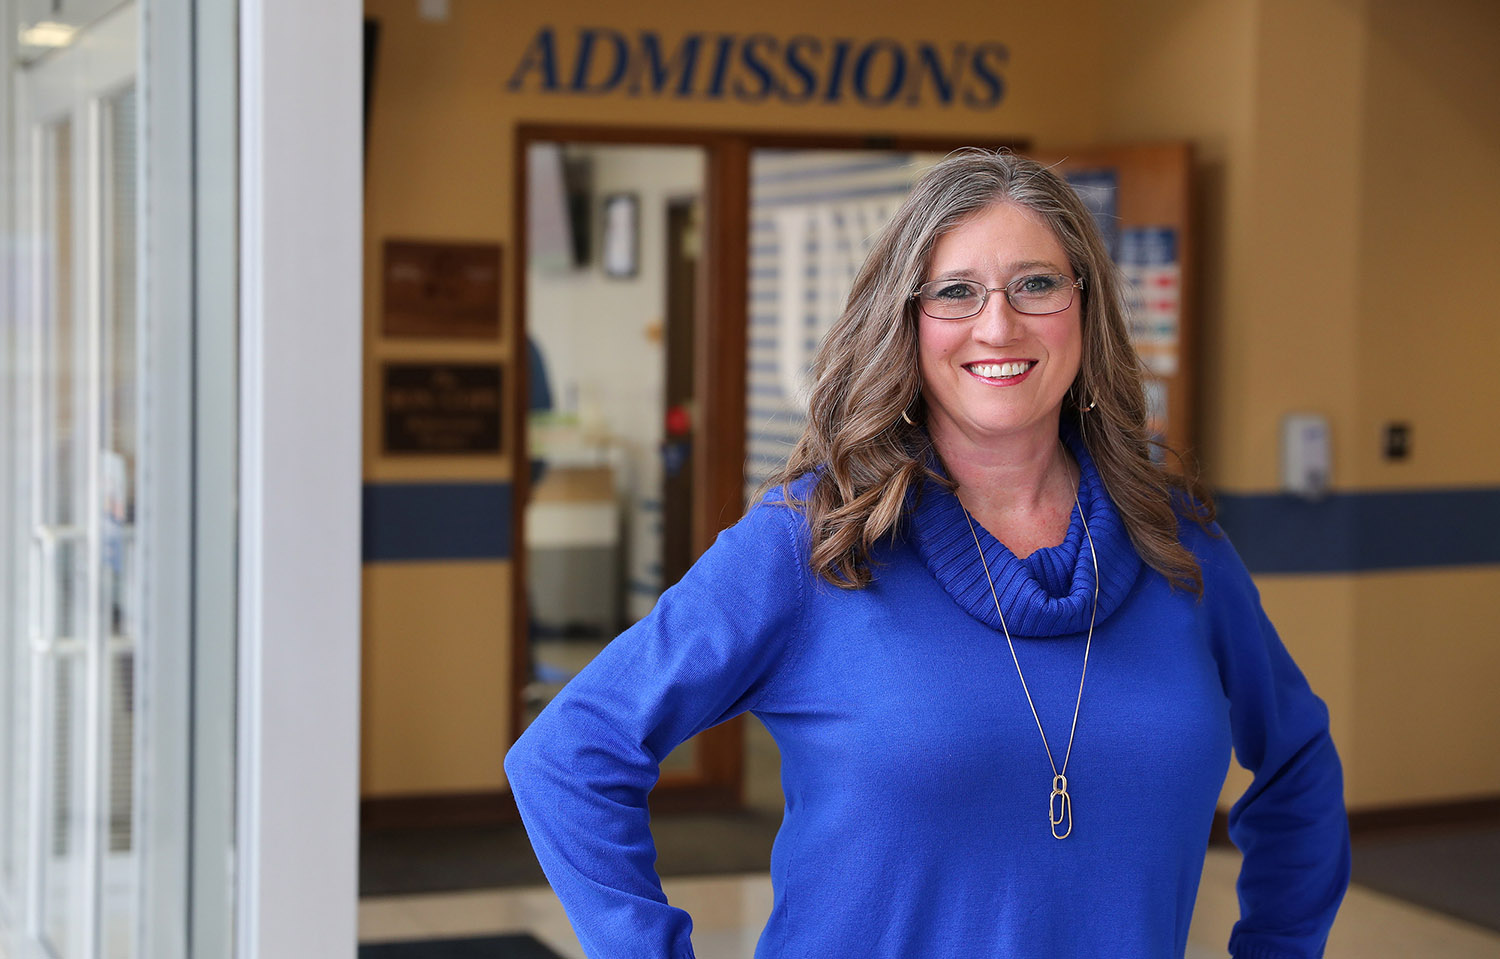 Jodi Holt was selected in December as the new admissions director at UNK. She'll start the position Feb. 15. (Photo by Erika Pritchard, UNK Communications)